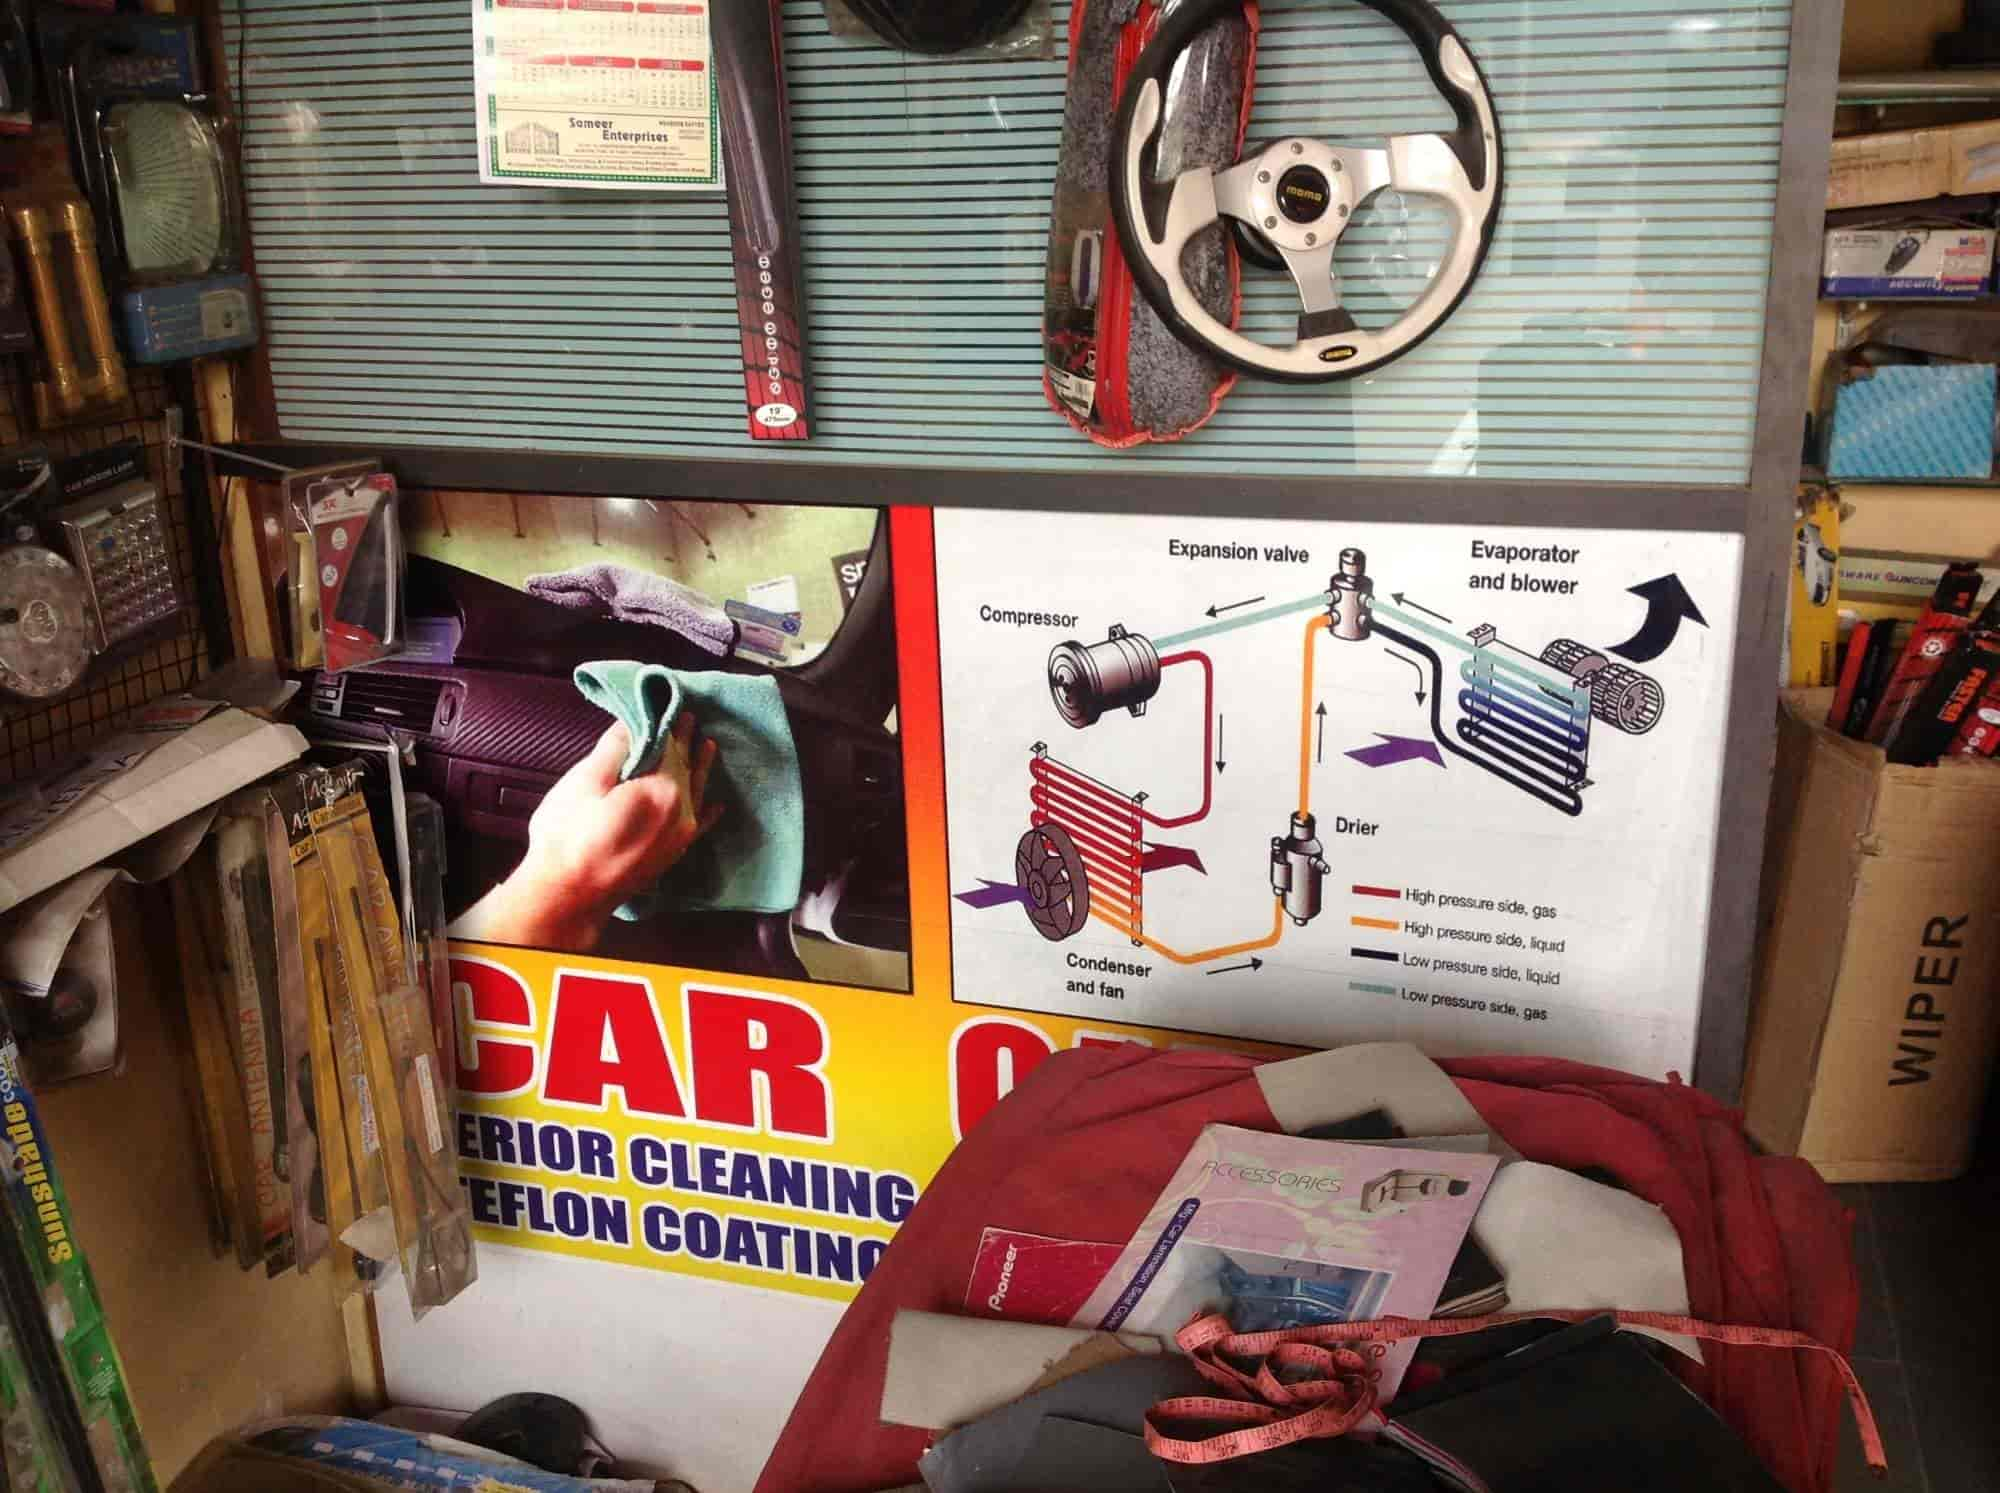 Auto Style Car Accessorie Photos Mundhwa Pune Pictures Images